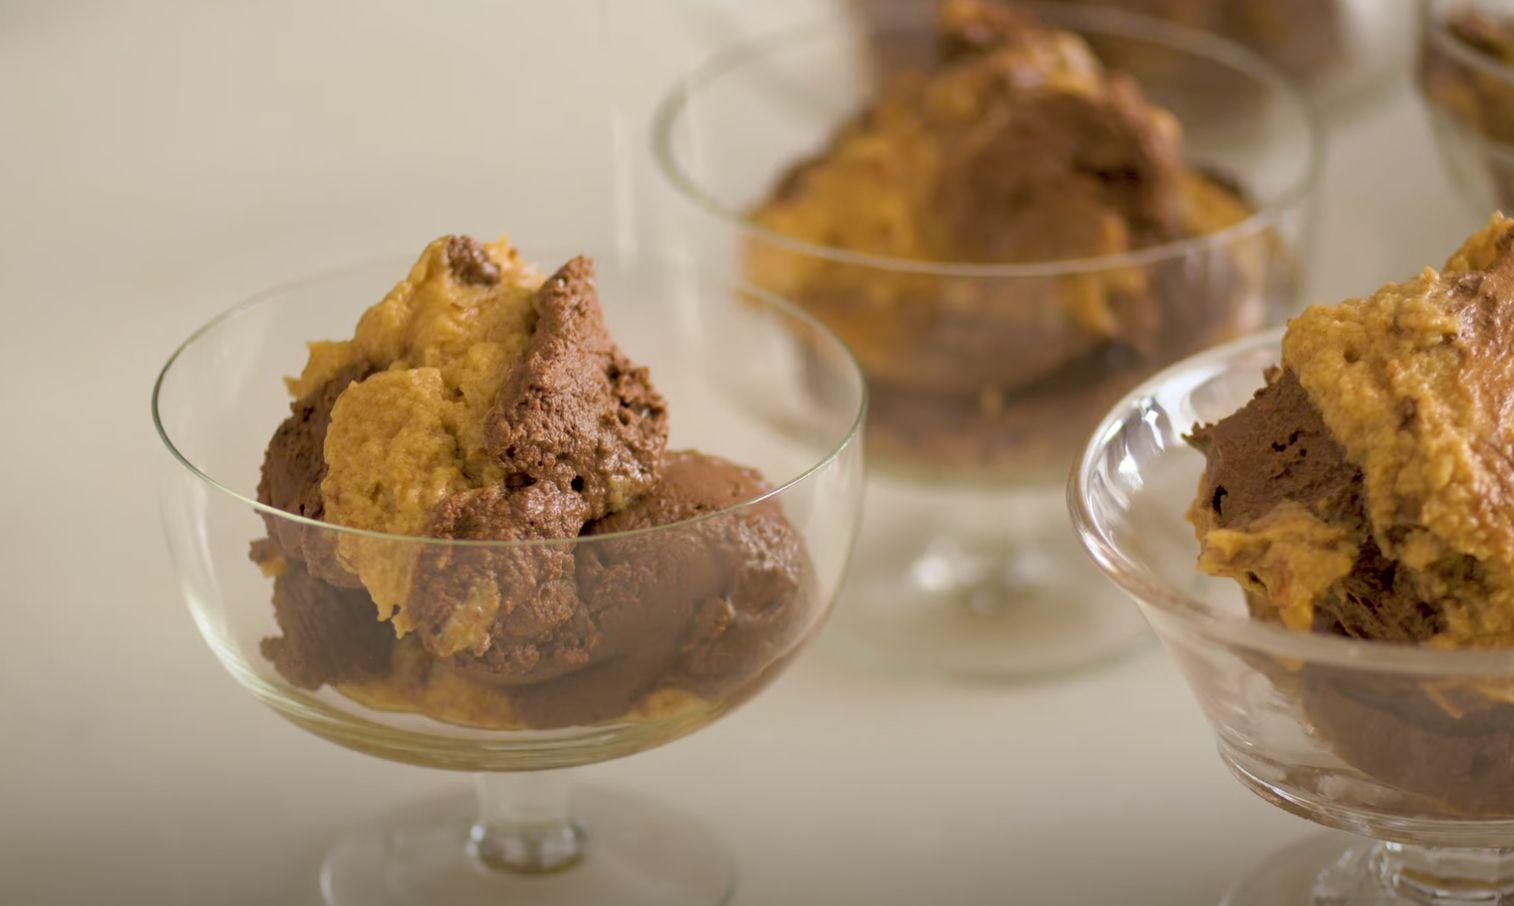 Silky Chocolate Mousse with Peanut Butter Crunch Recipe